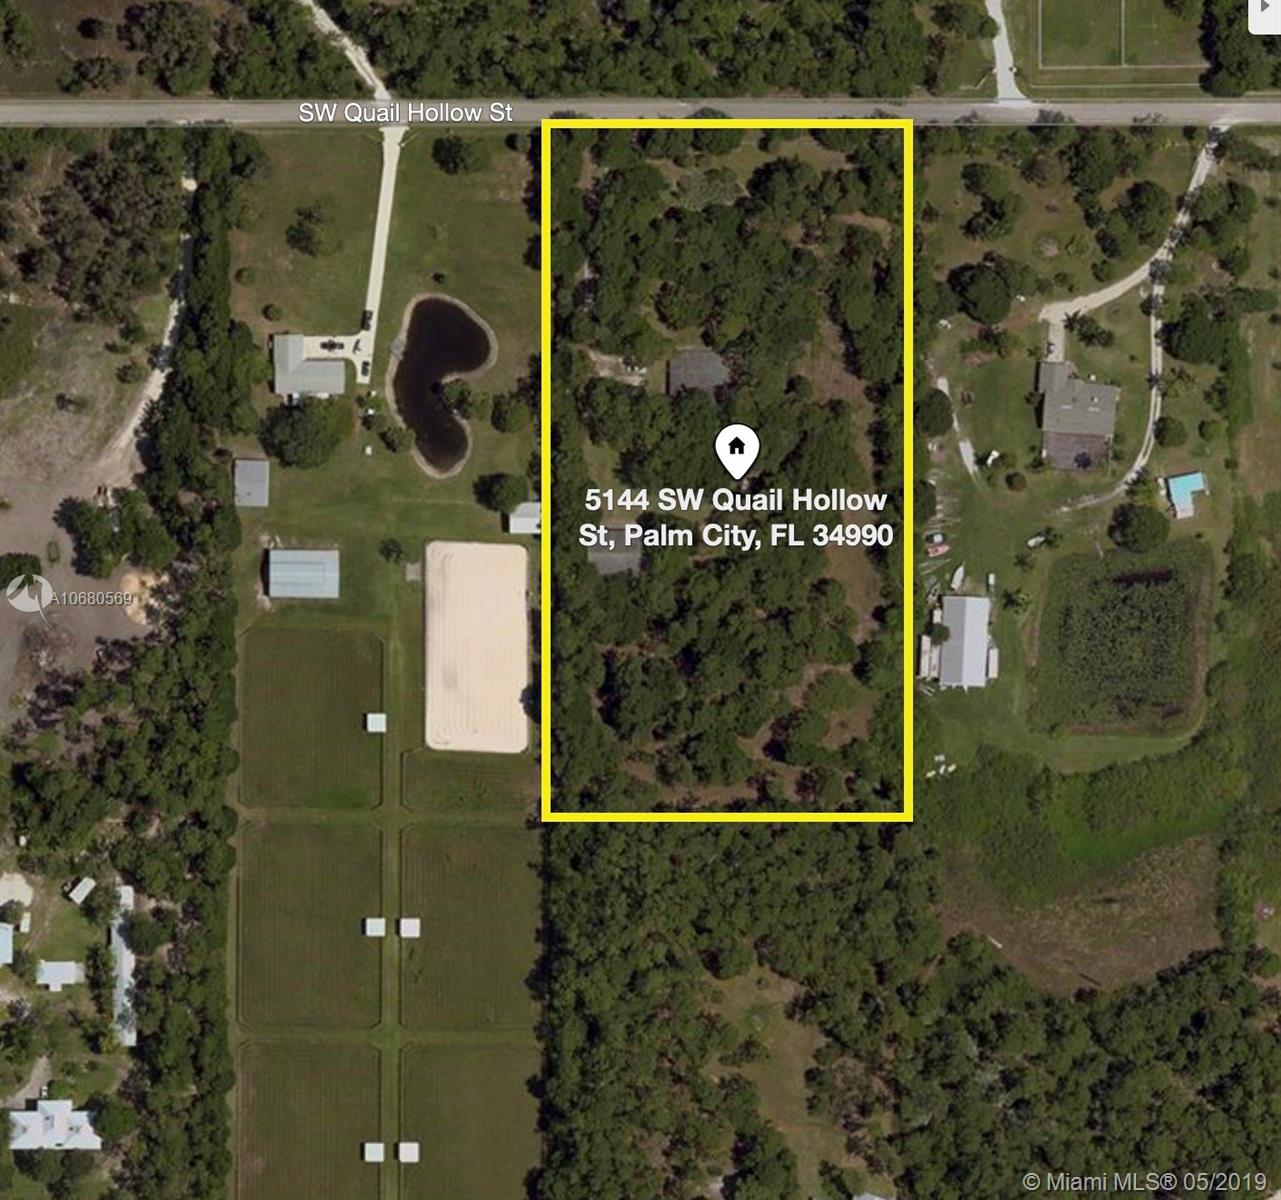 5144 SW Quail Hollow St, Palm City, FL 34990